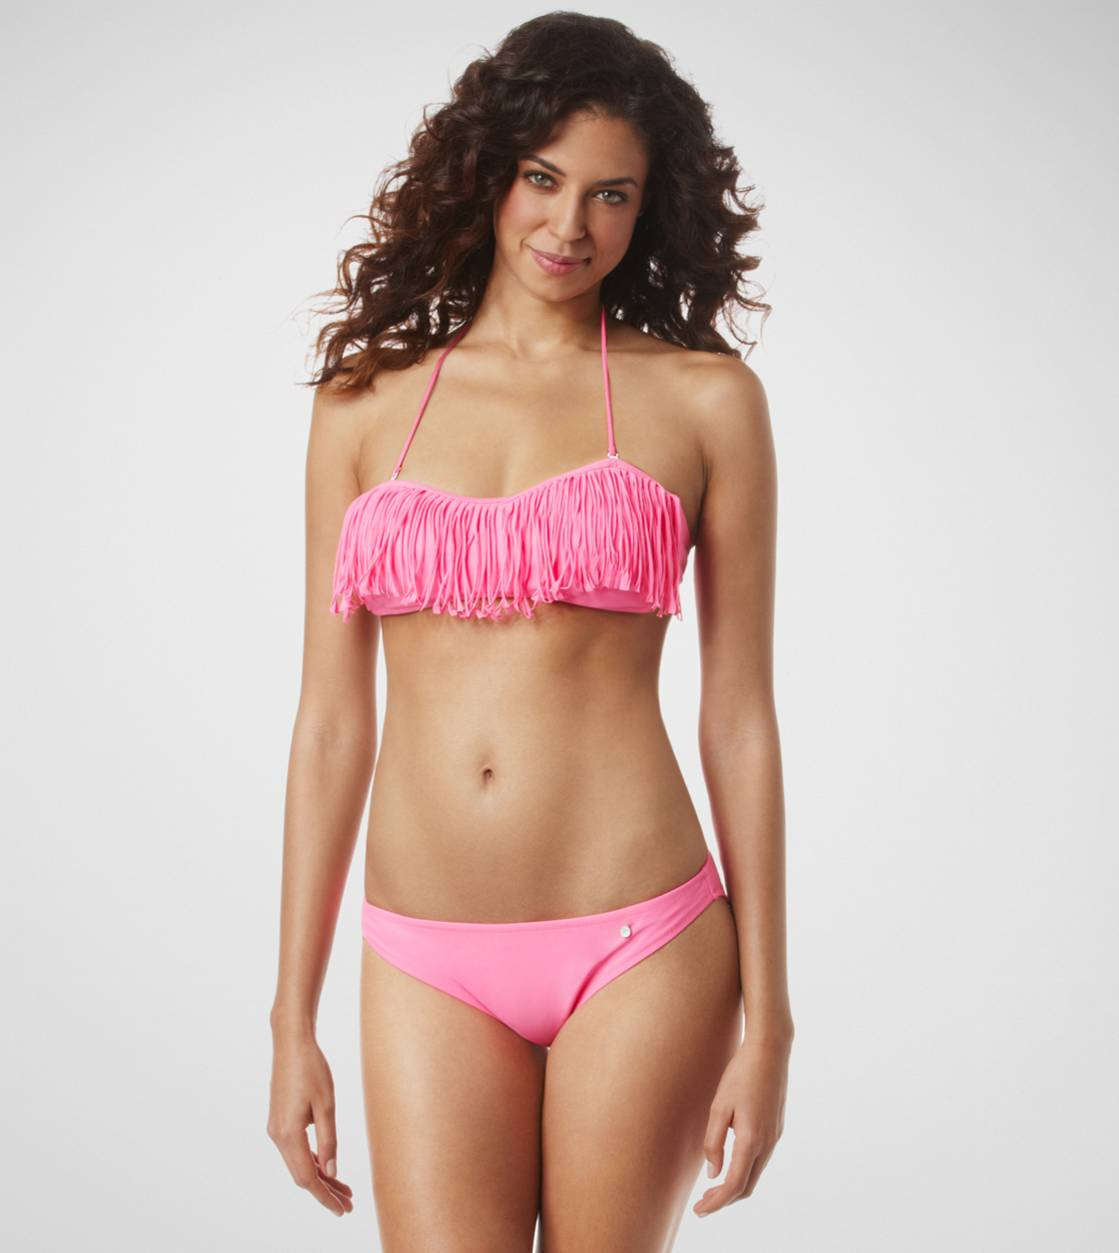 Shop long fringe bikinis at cheap prices online, find our newest long fringe bikinis is our new arrivals section at Pink Basis. If you want a cute fringe swimsuit then Pink Basis is the pace for you, buy a cheap fringe swimsuit that will last for a long time.